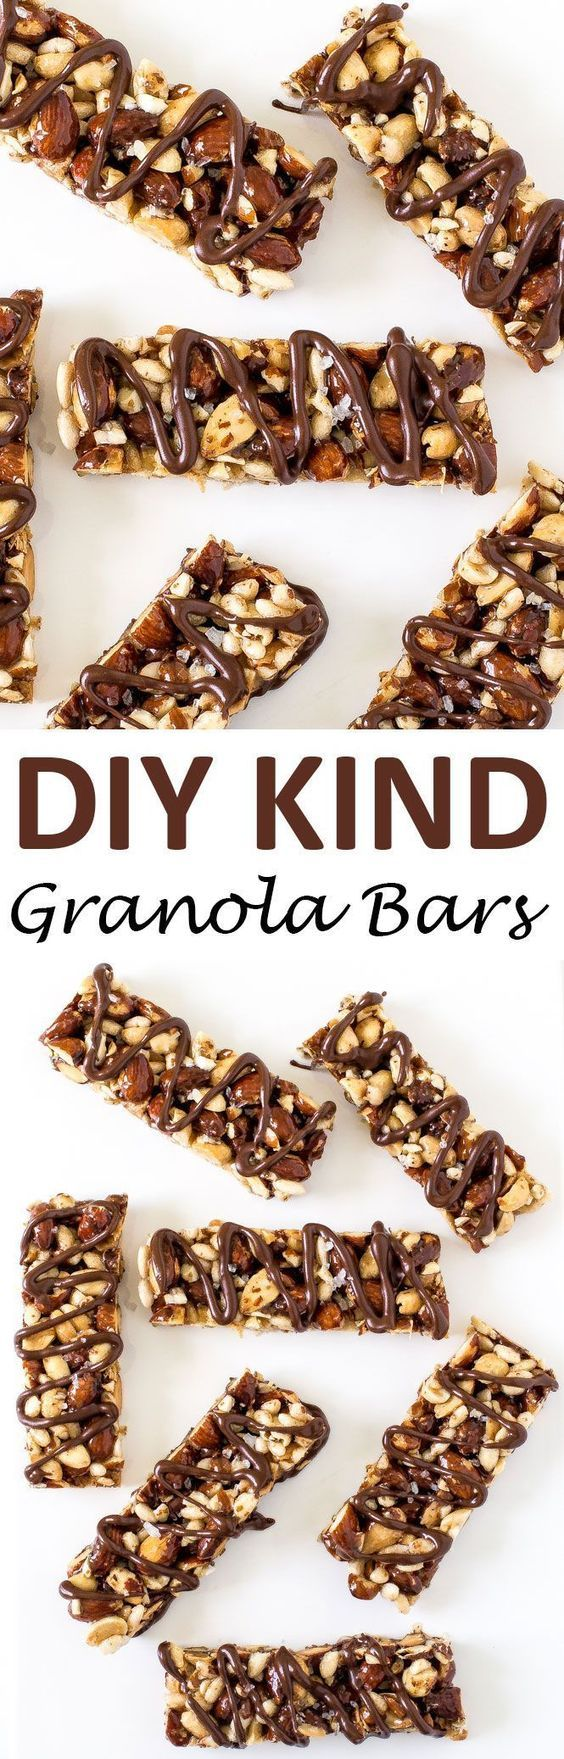 Copycat Kind Granola Bars recipe. Loaded with nuts and drizzled with chocolate and sea salt. They taste just like the Dark Chocolate & Sea Salt Kind Bars! | chefsavvy.com